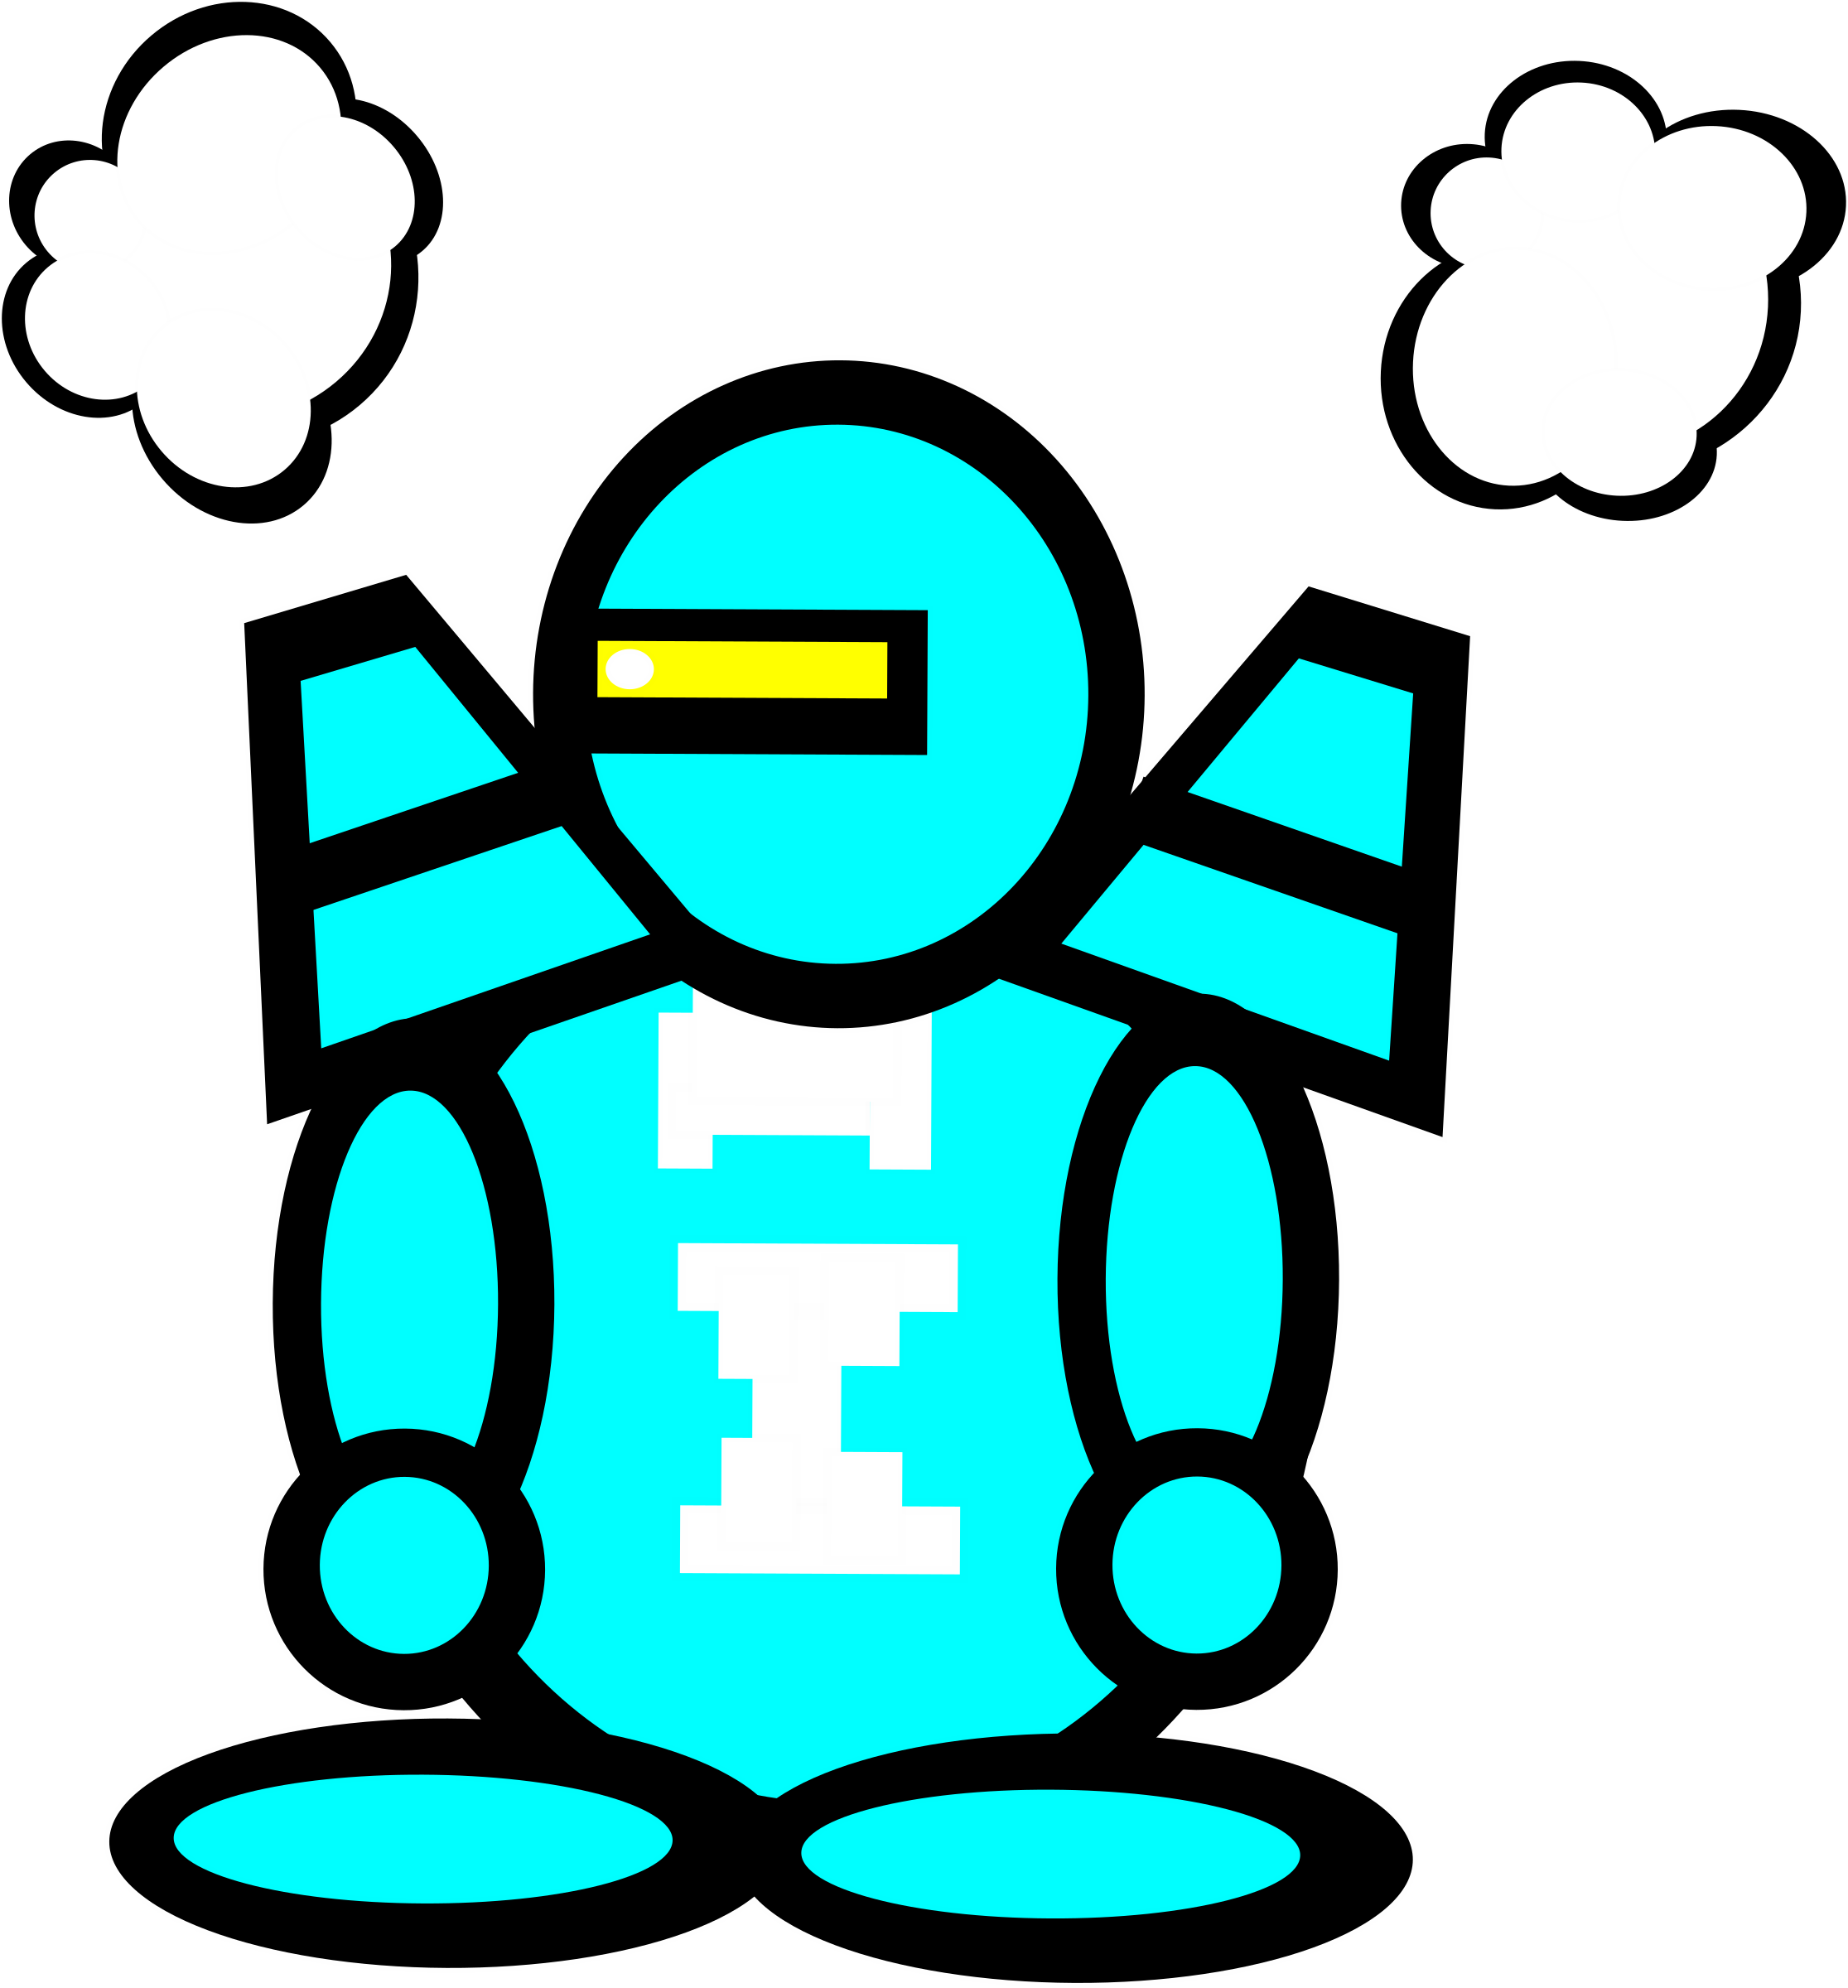 coolbot by PeterBrough